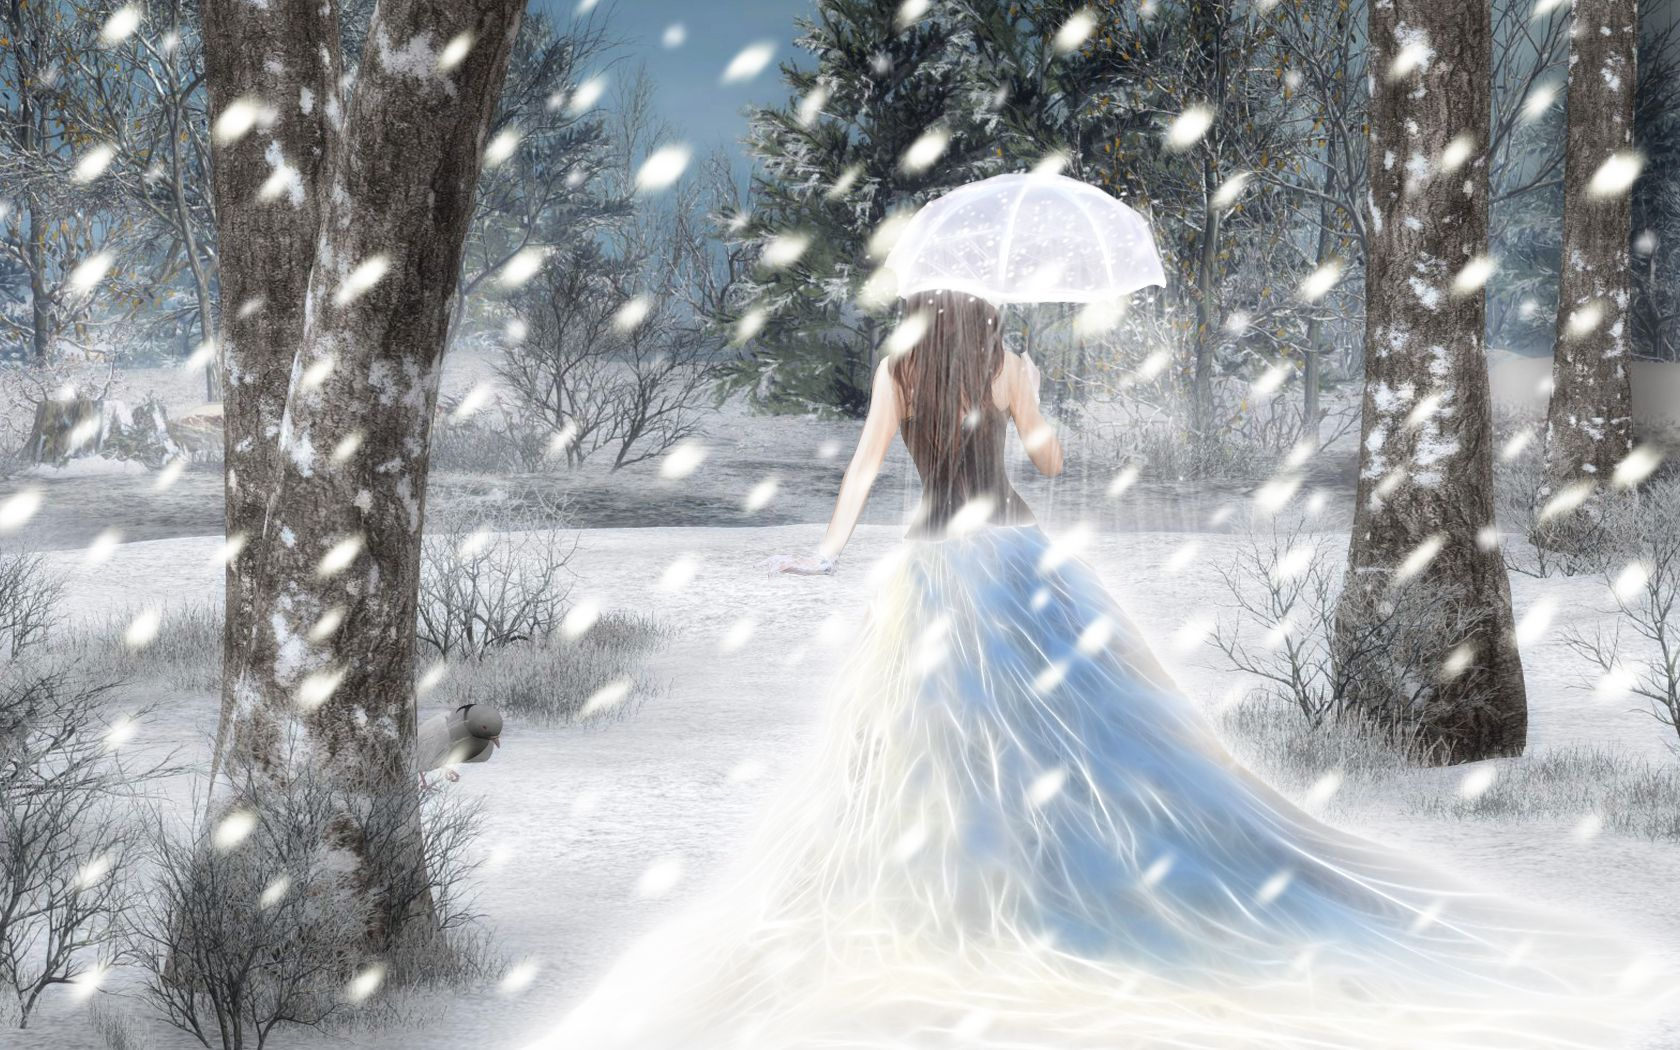 45 Beautiful Winter Illustrations And Wallpapers Noupe Dps For Girls Girl Wallpaper Stylish Dp